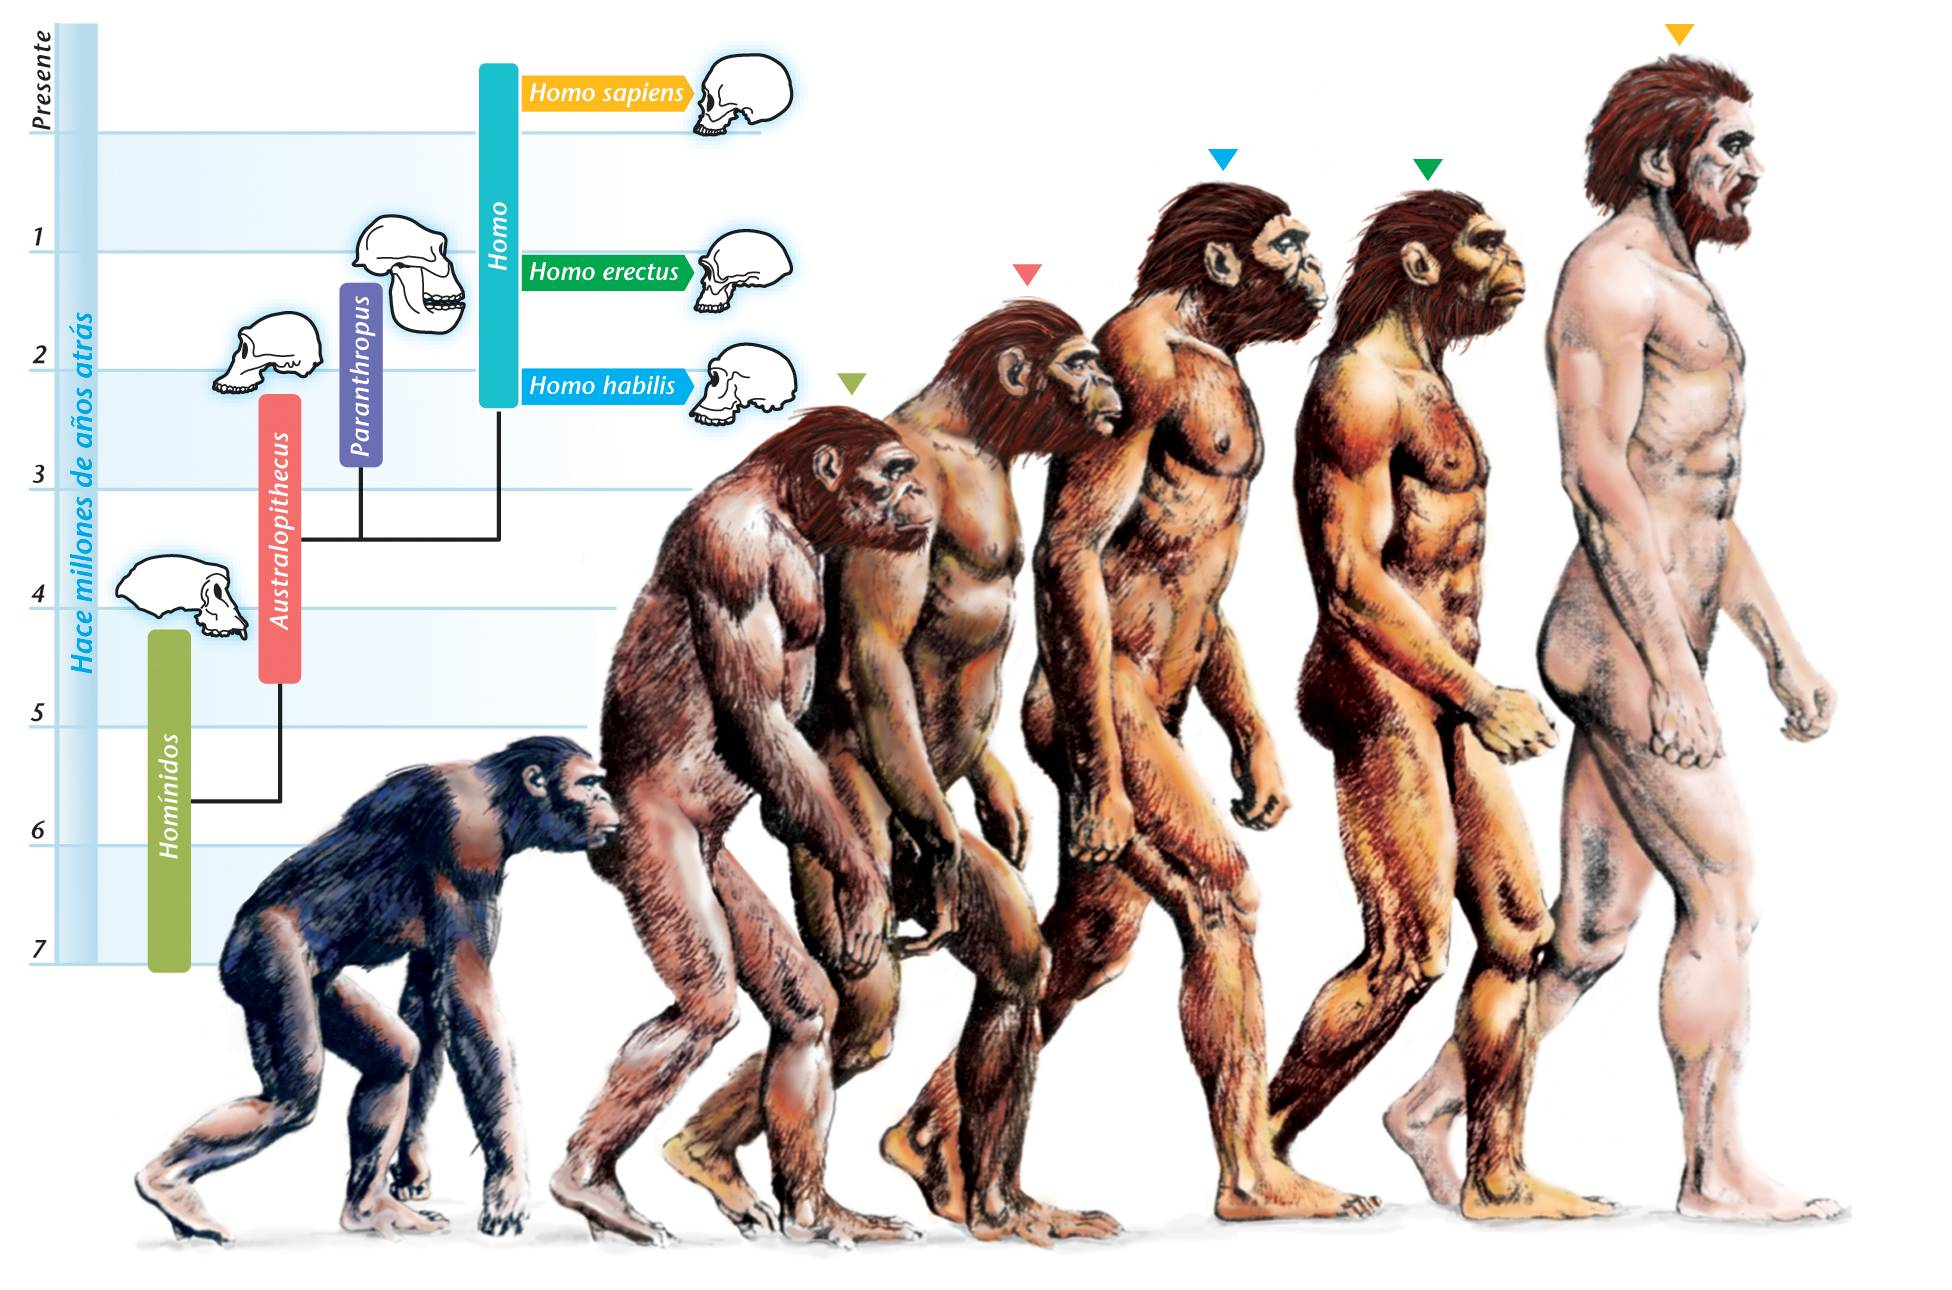 Image result for image of the evolution of humans